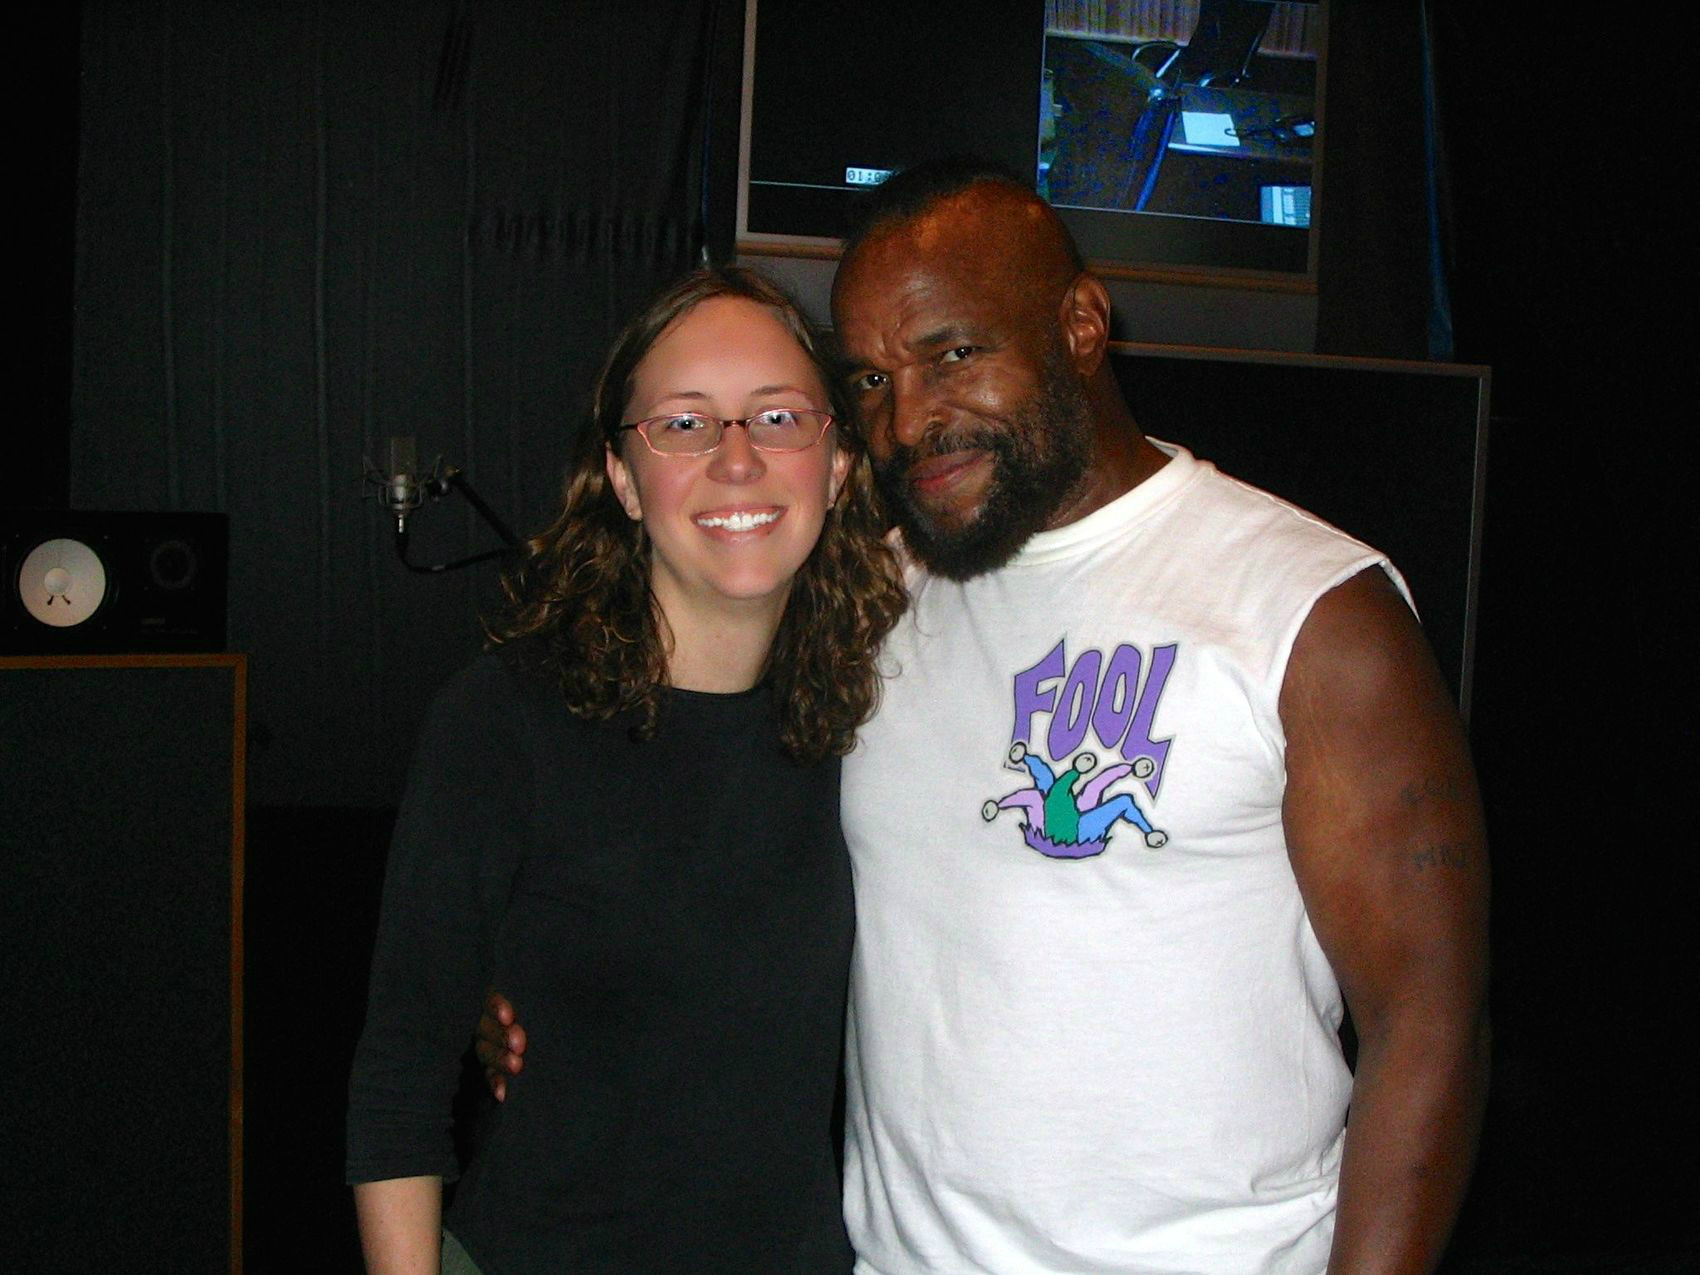 April and Mr. T